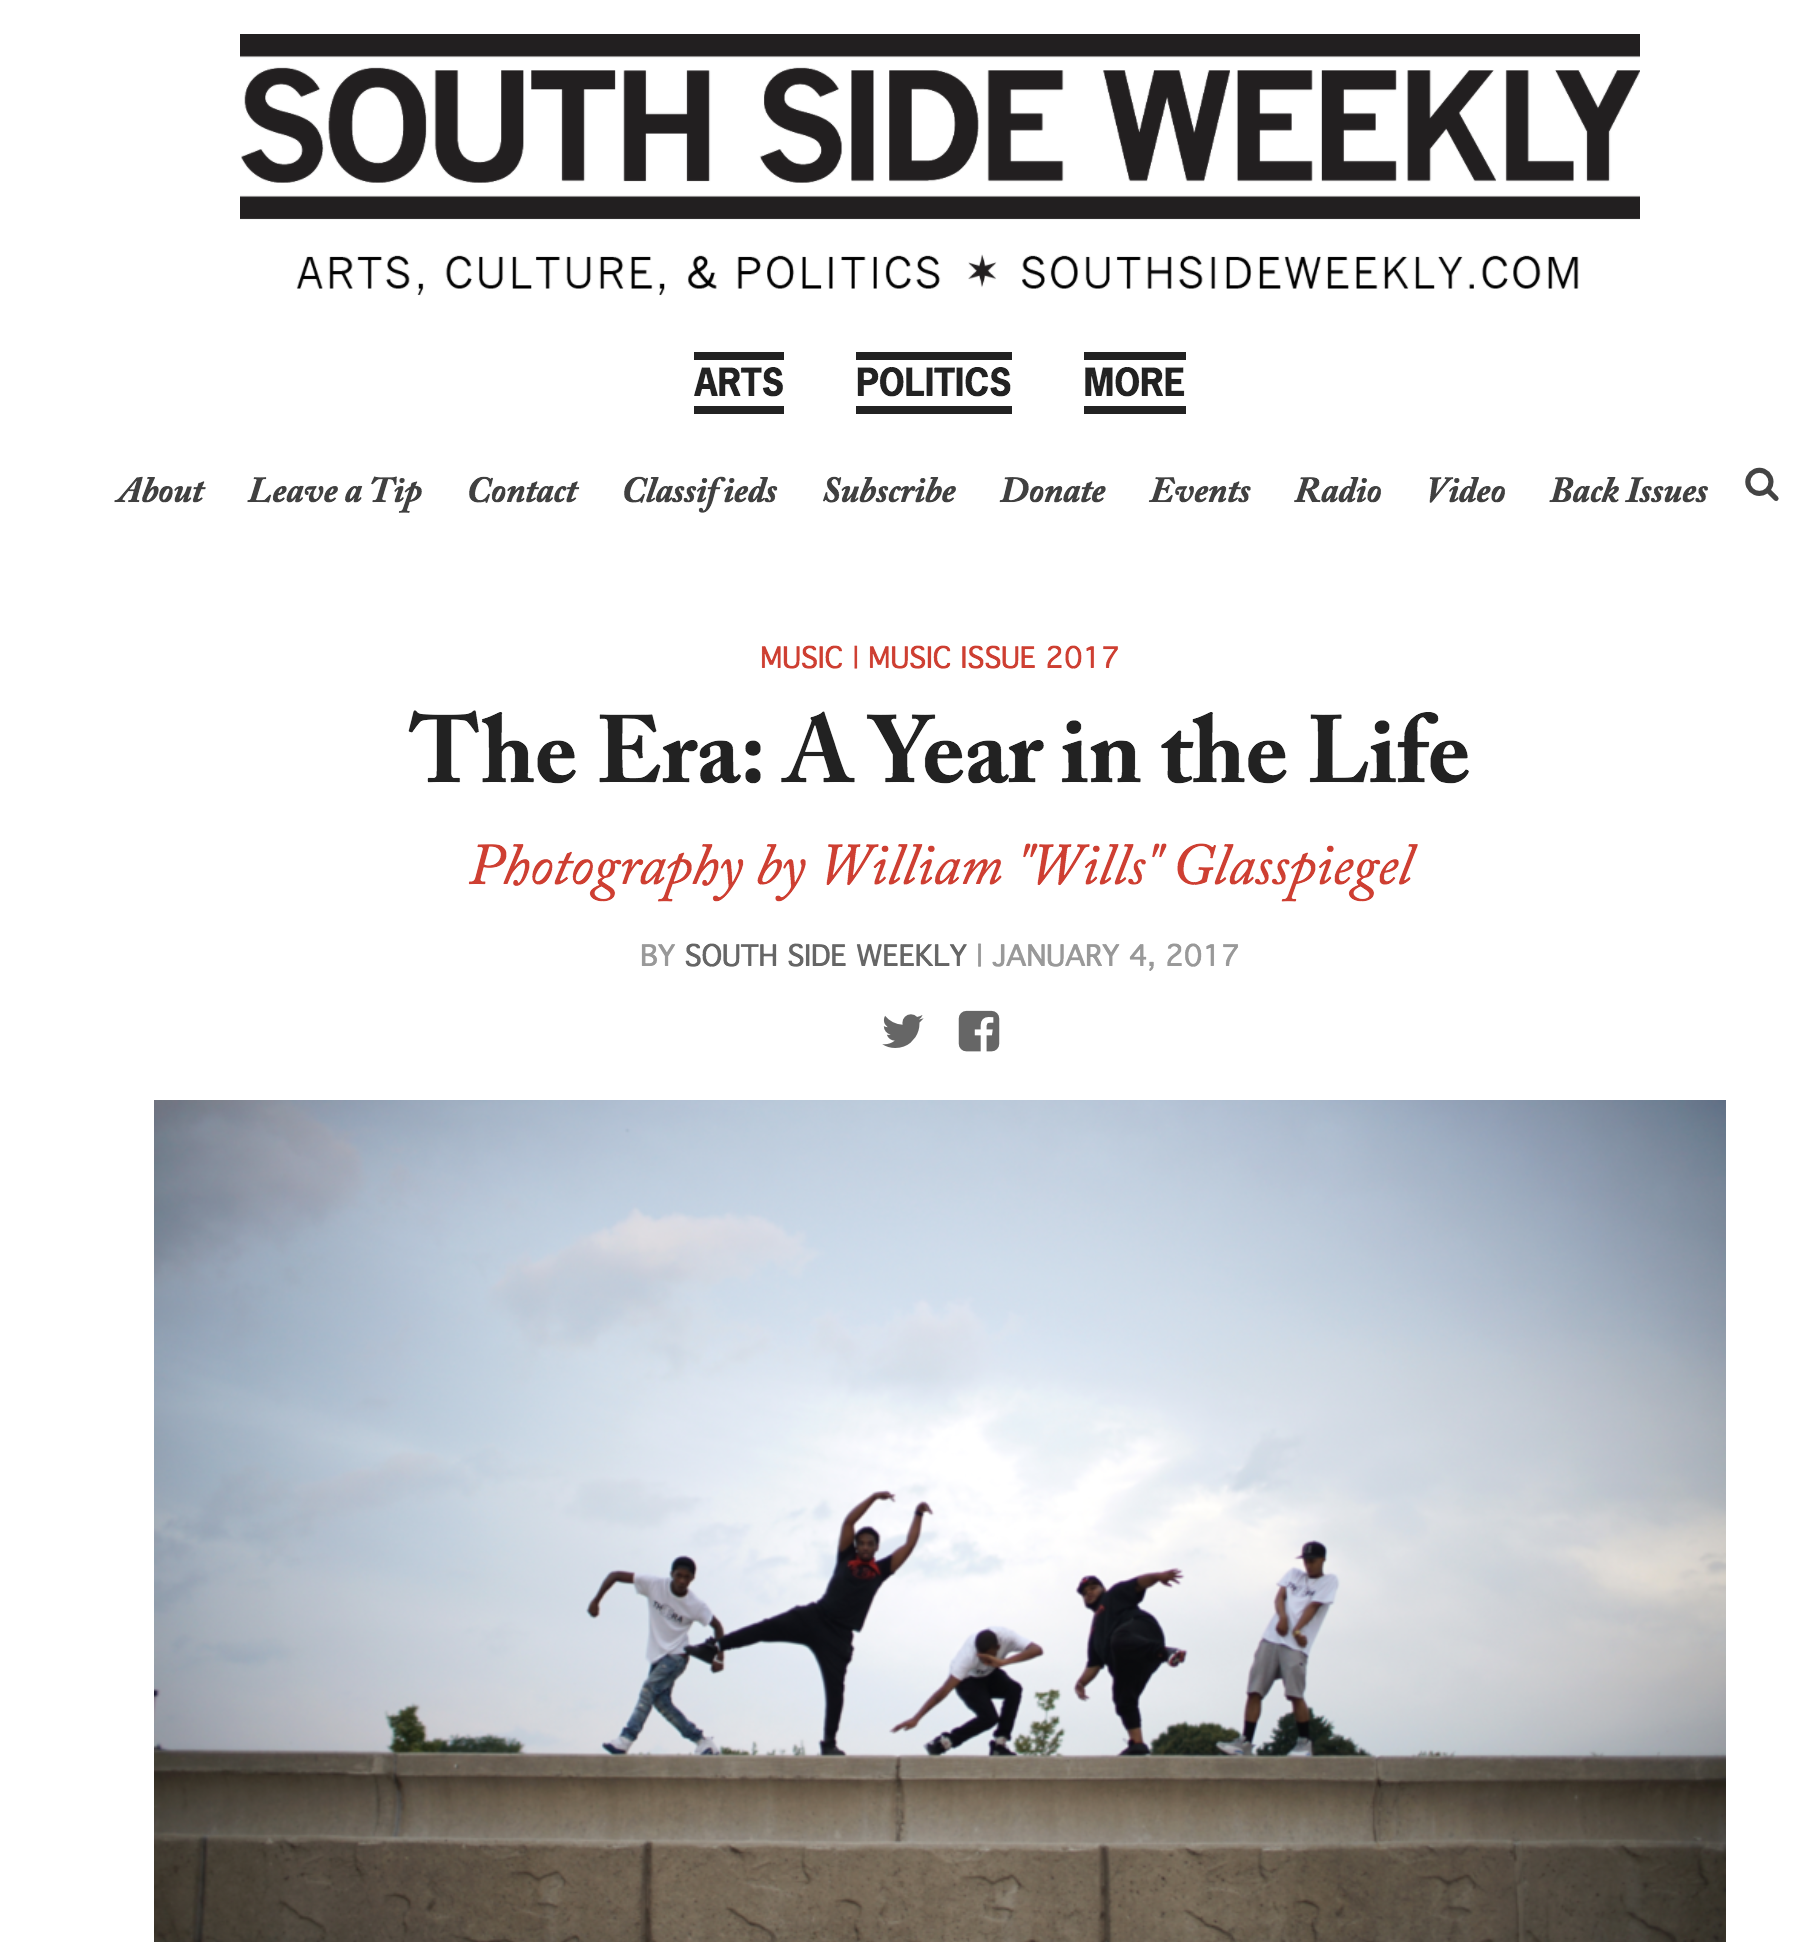 South Side Weekly (US - Chicago)